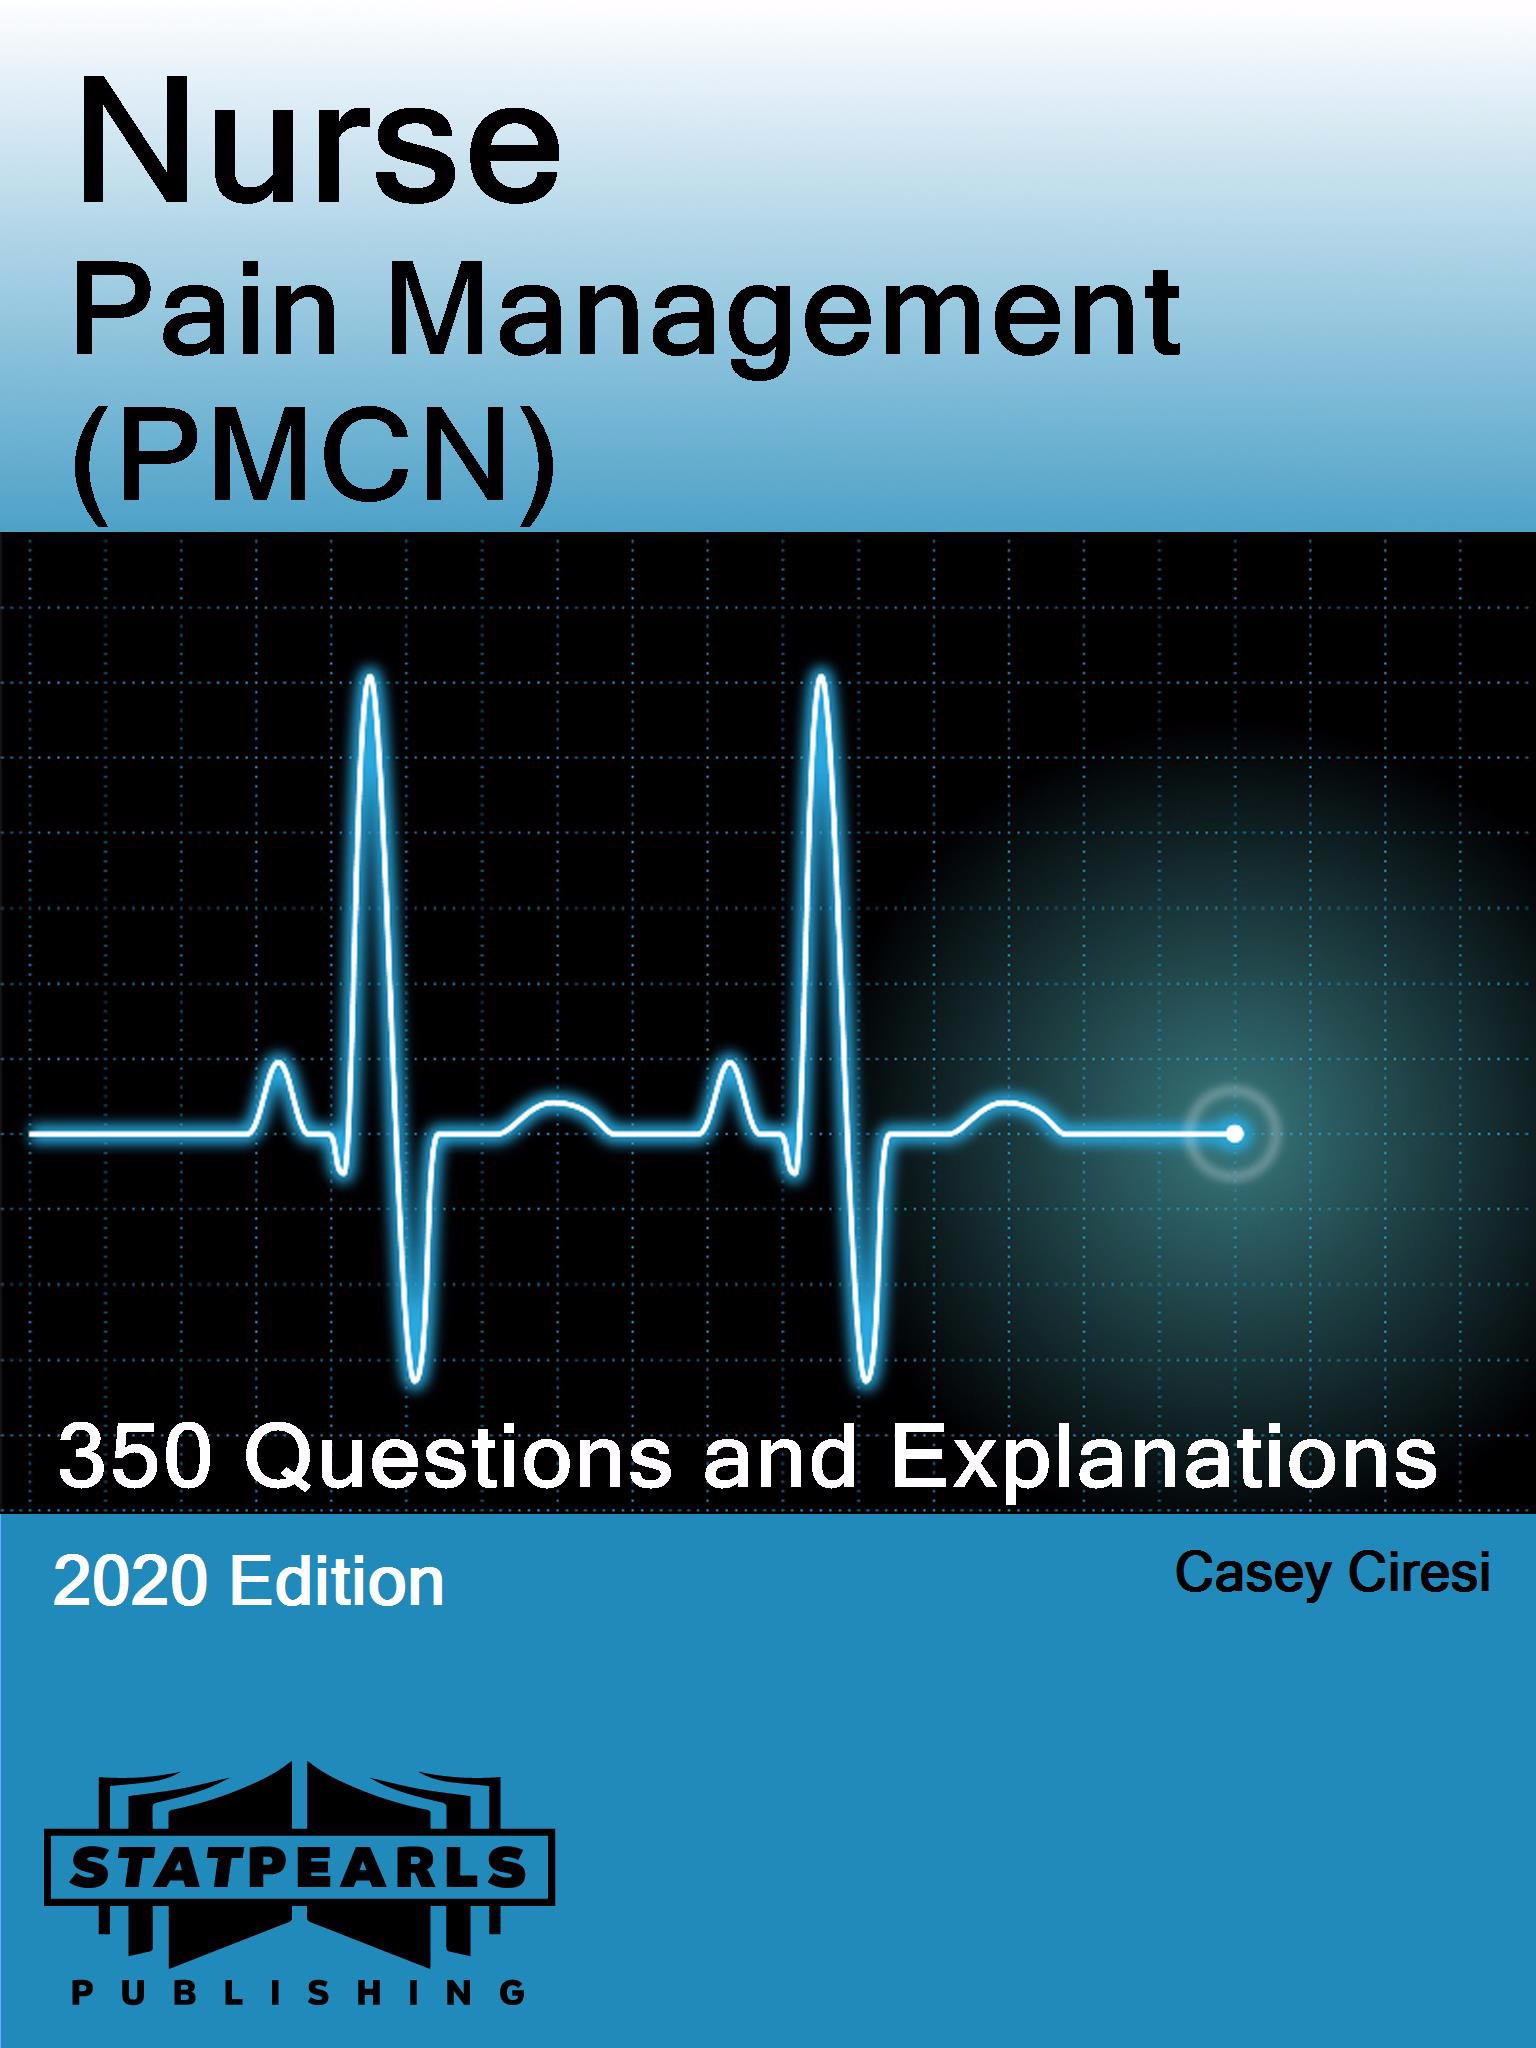 Nurse Pain Management (PMCN)